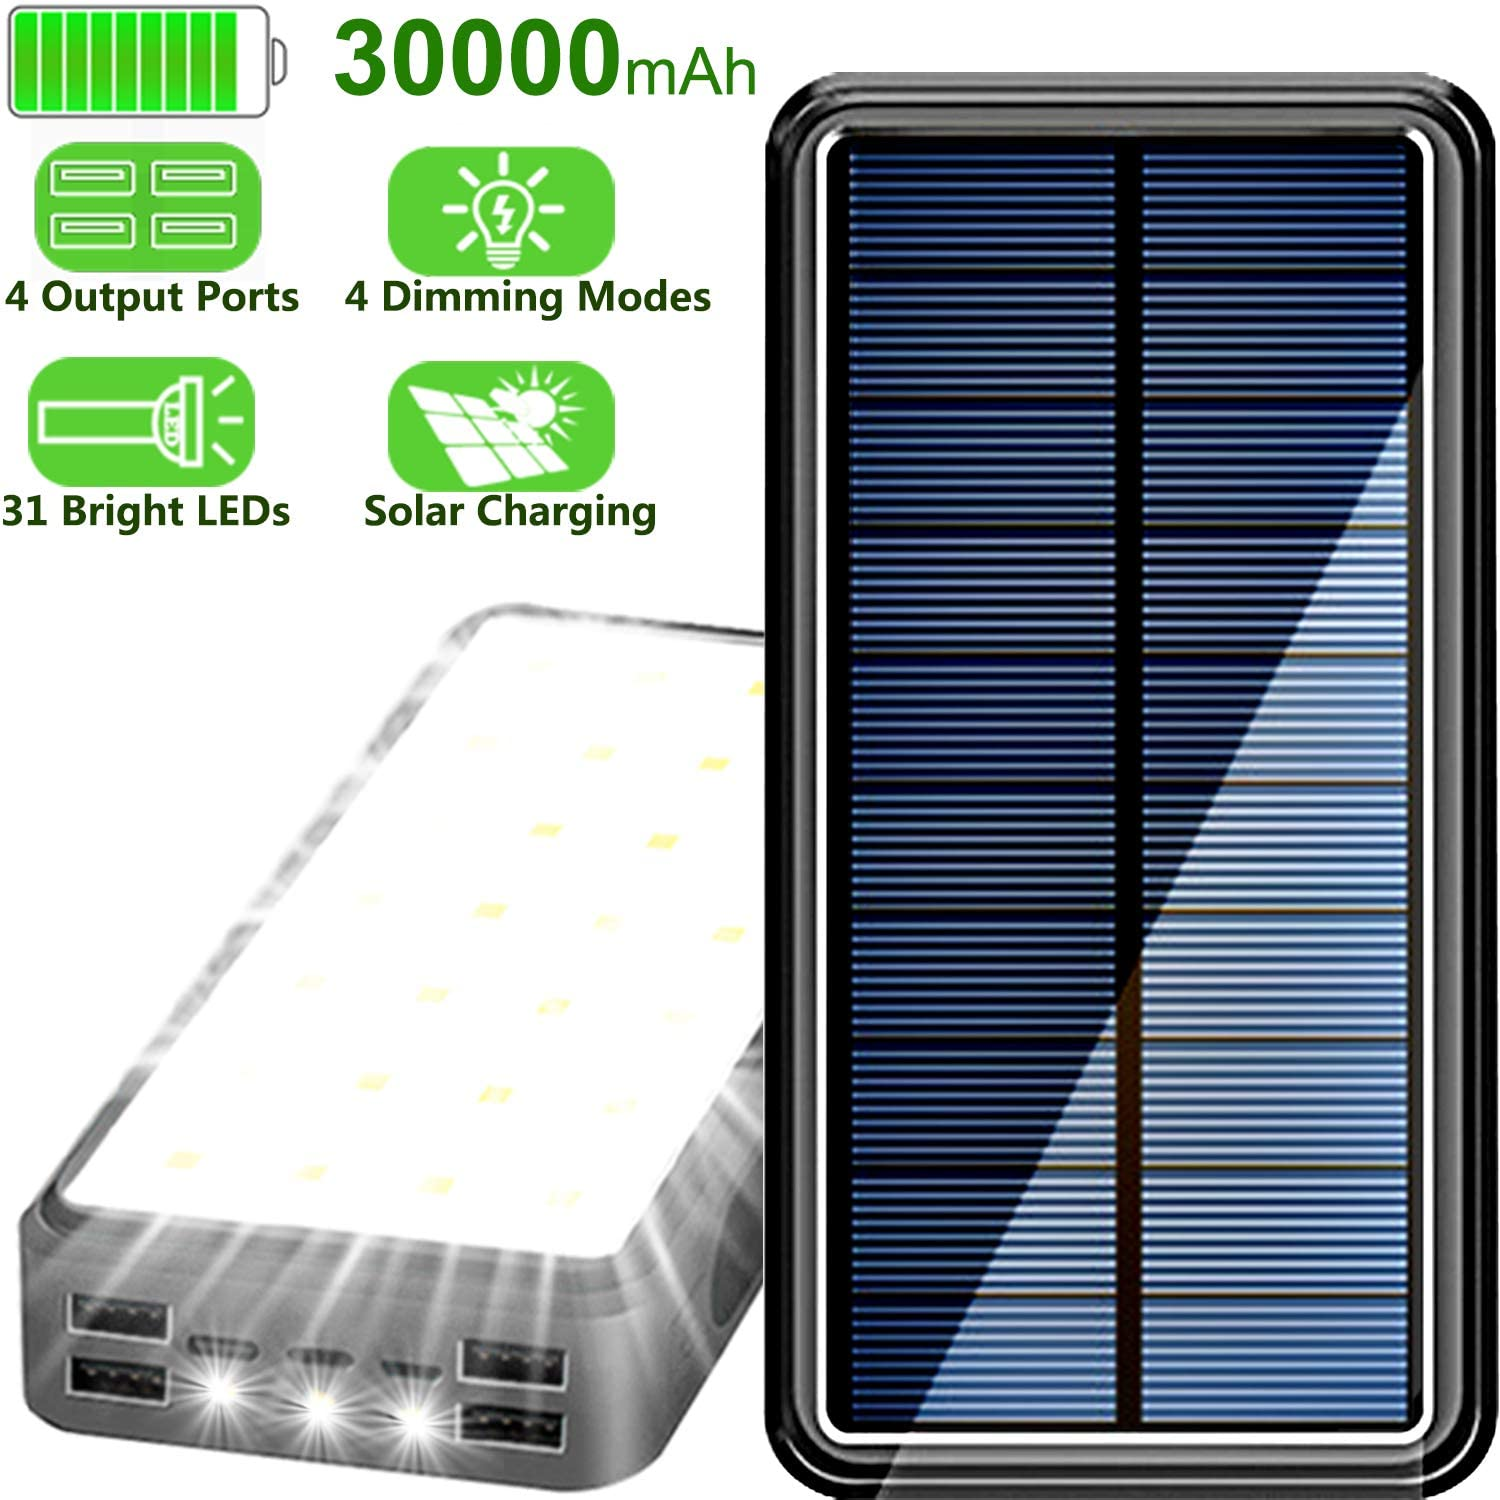 Lit Solar Power Bank 30000 mAh Solar Charger for Cell Phone, Solar Power Charger with 31 LEDs Lights 4 Dimming Modes and 4 USB Output Ports & 3 Inputs Ports for Type-C/iOS/Android